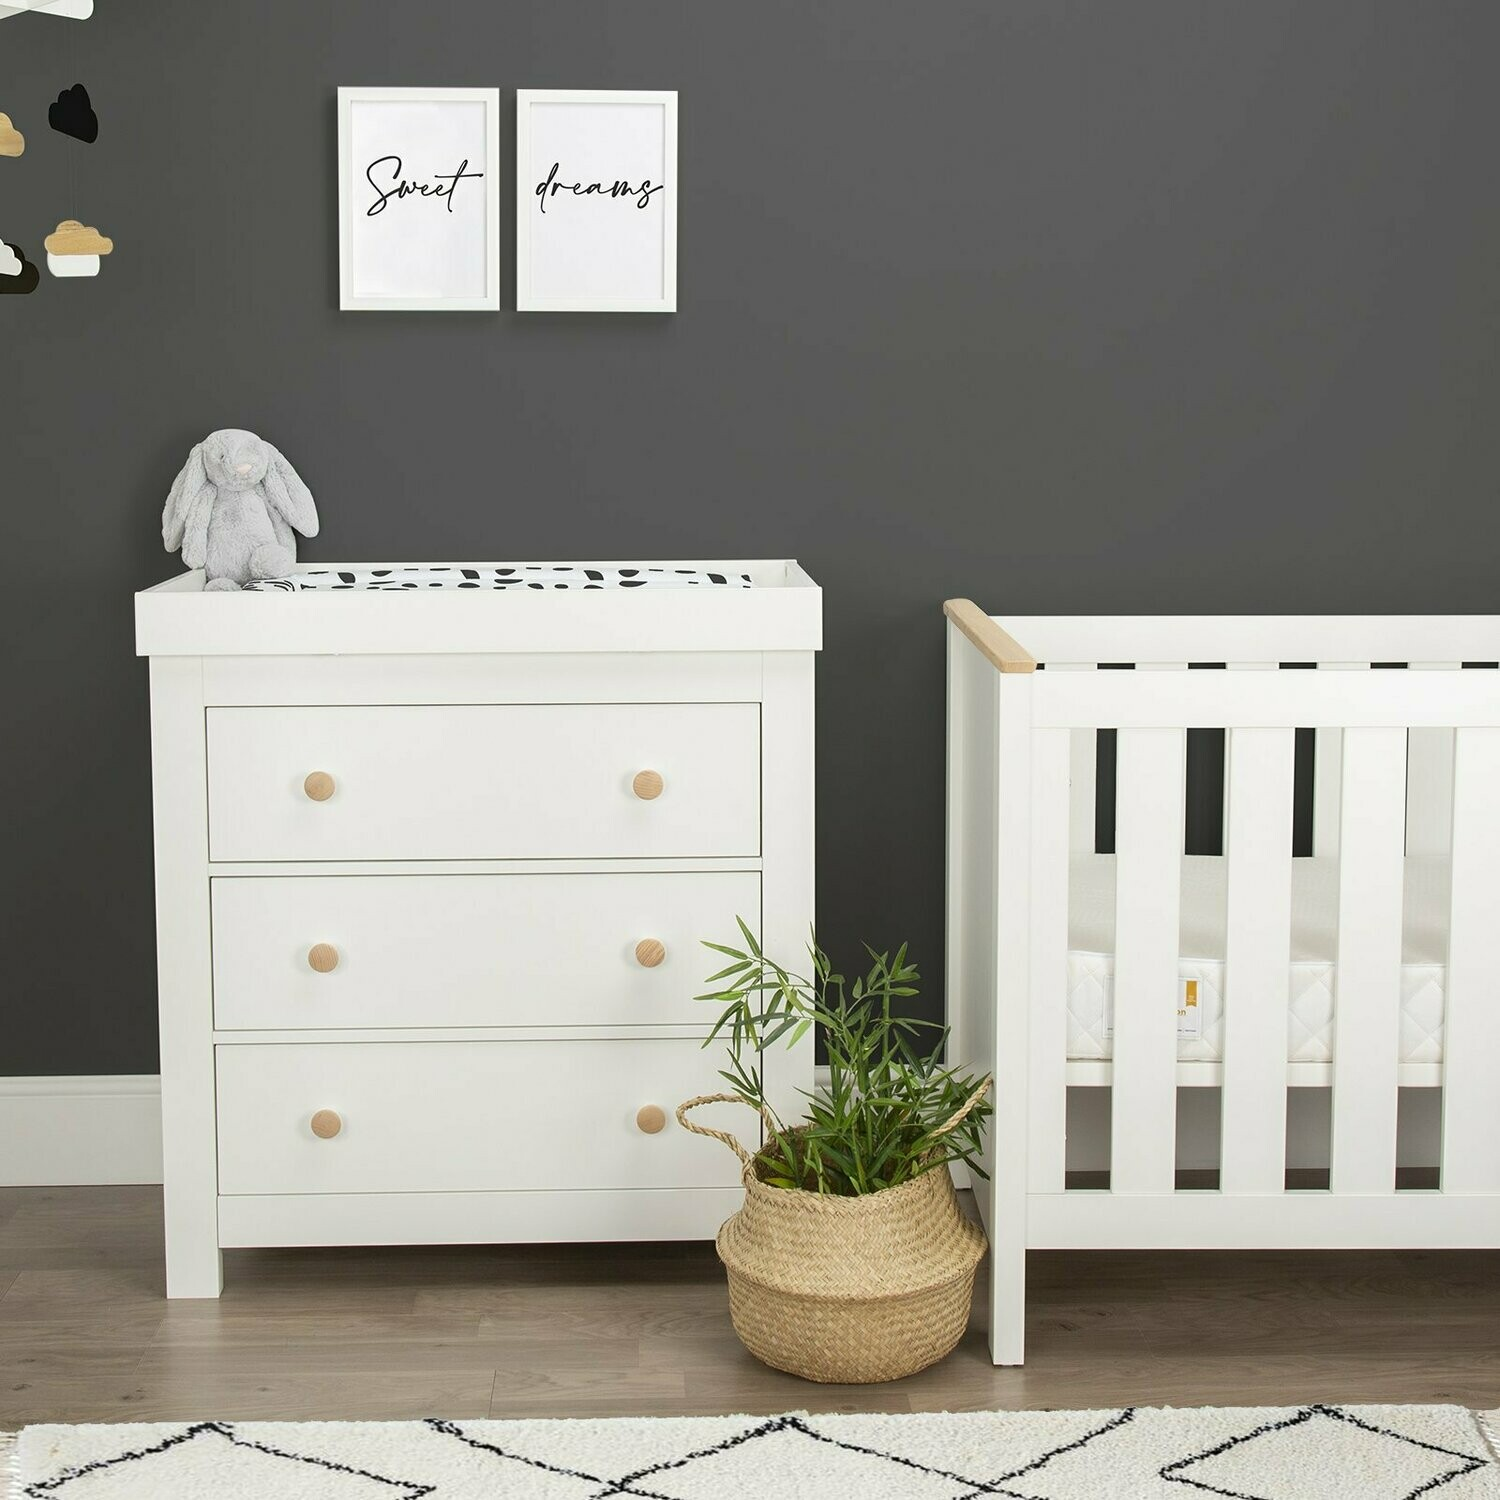 Aylesbury 2pc Set - 3 drawer dresser and cot bed.